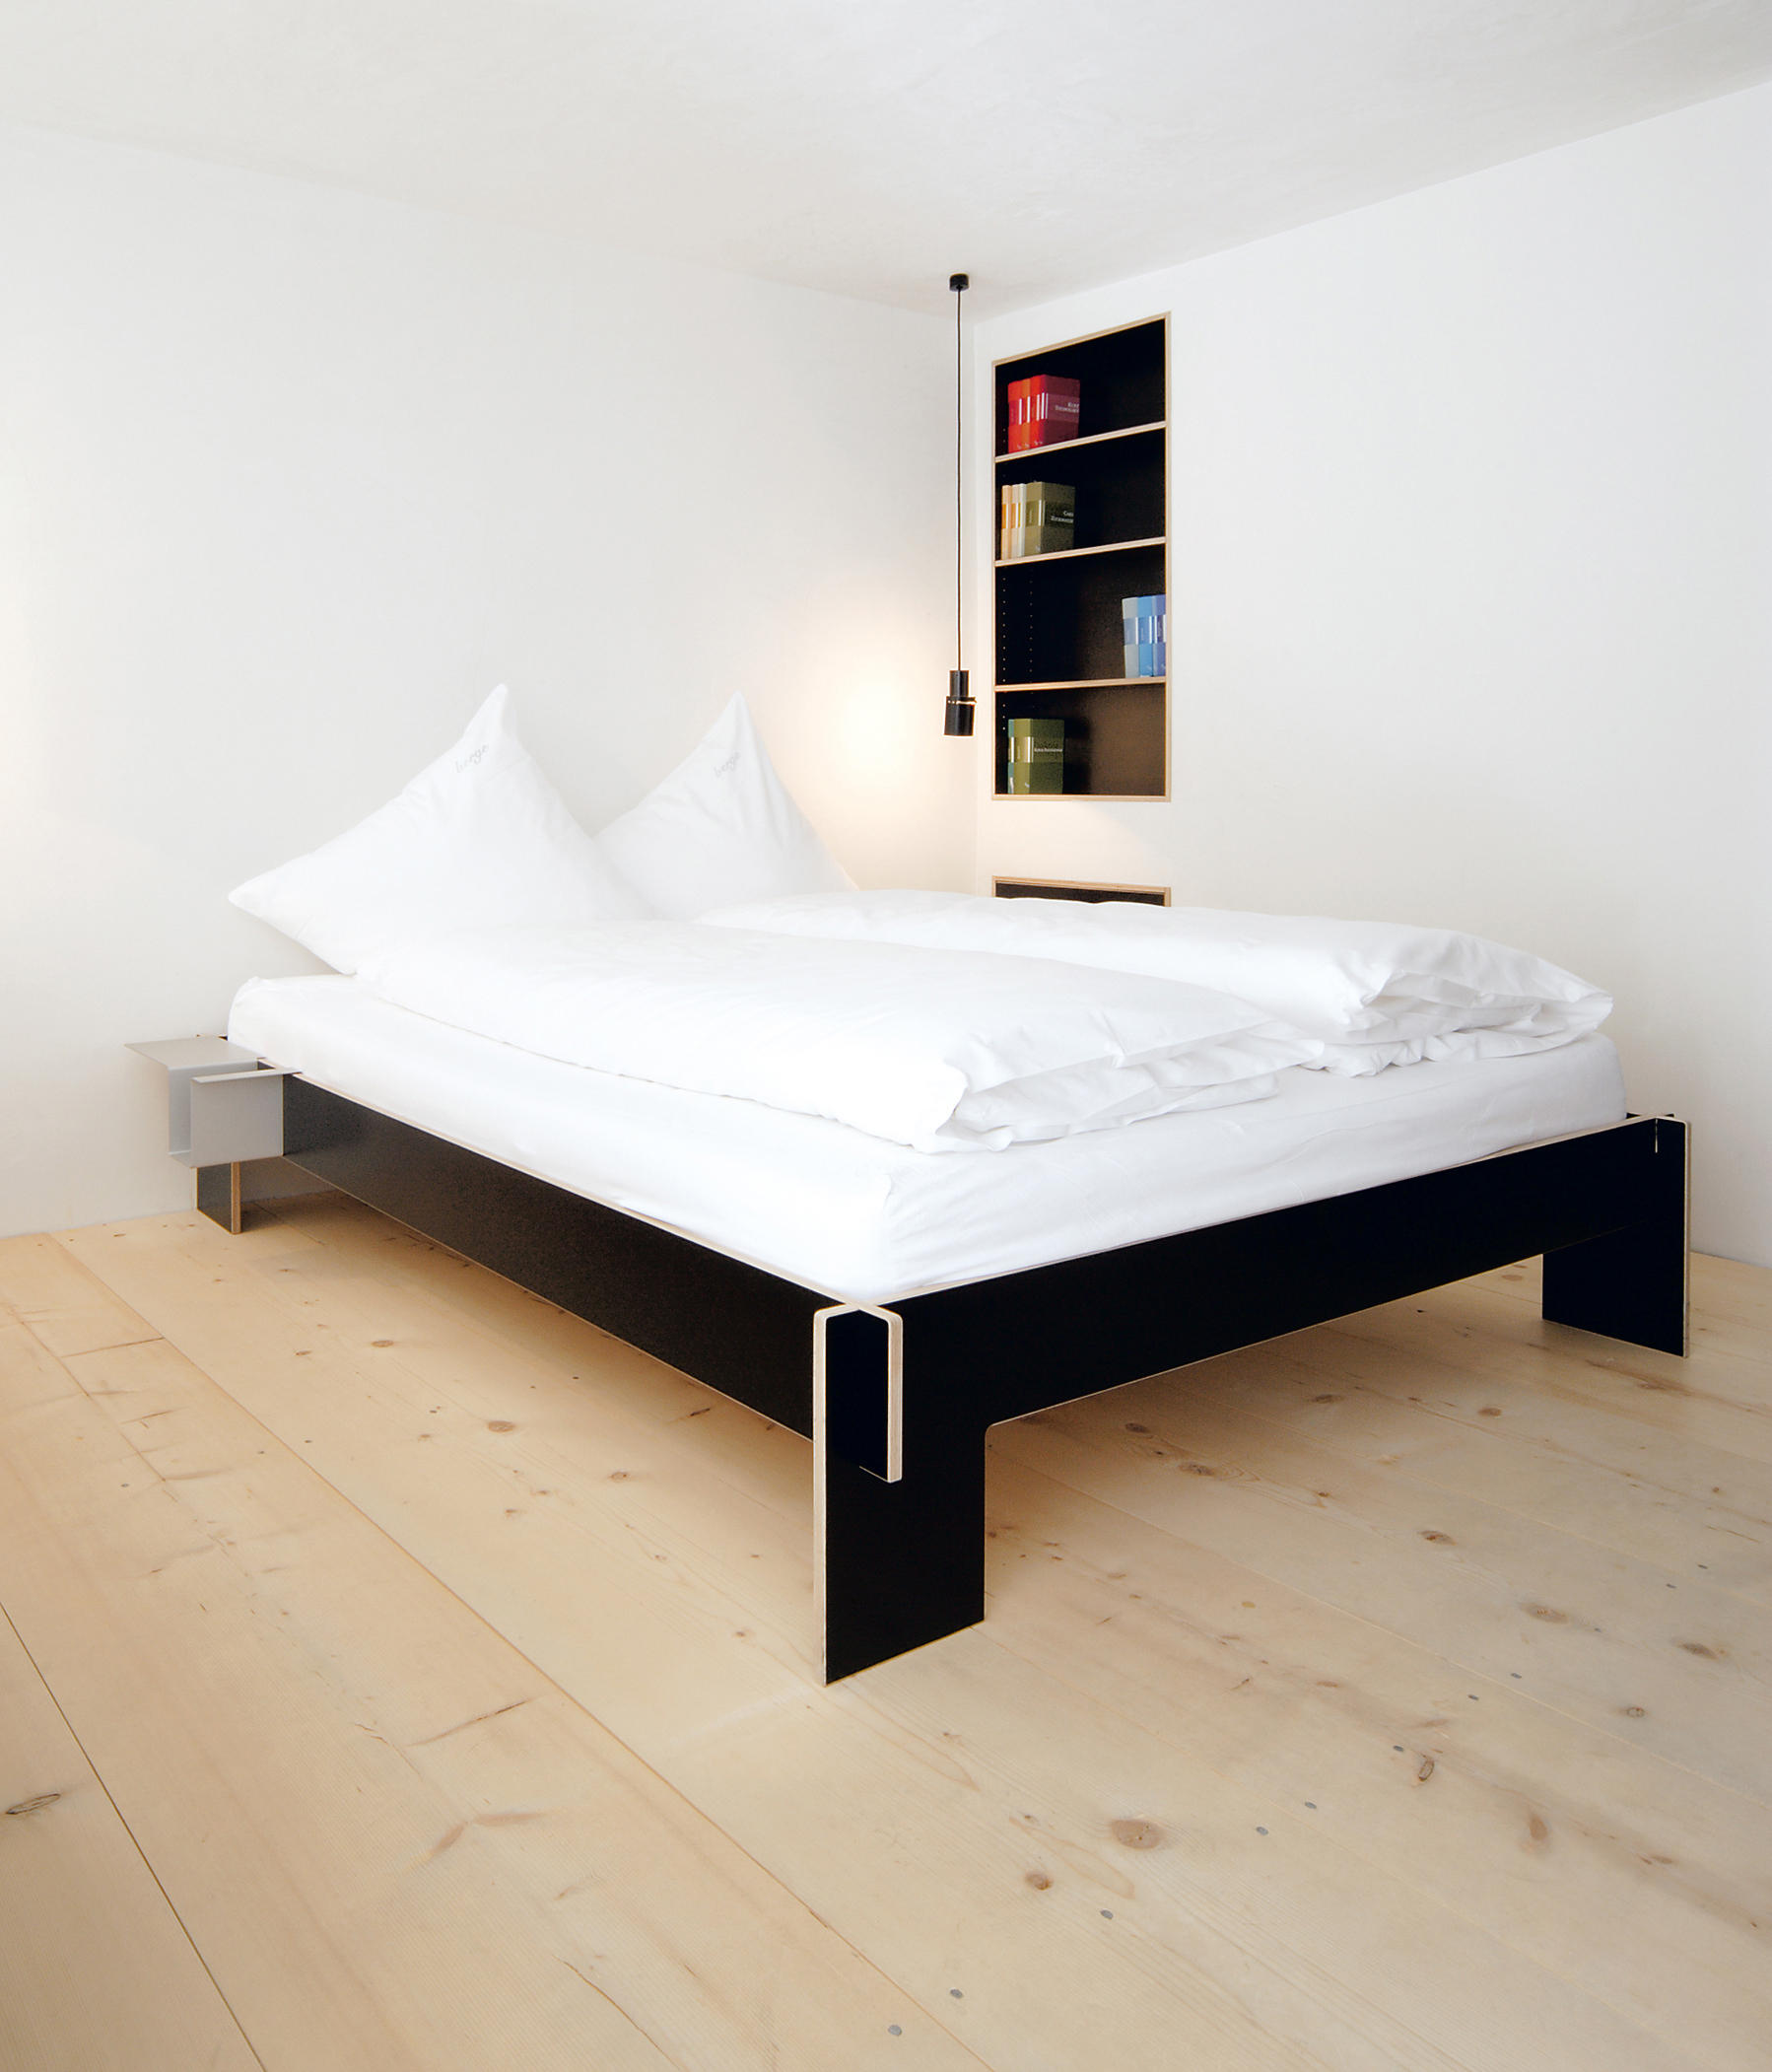 siebenschl fer mit kopfteil einzelbetten von moormann architonic. Black Bedroom Furniture Sets. Home Design Ideas